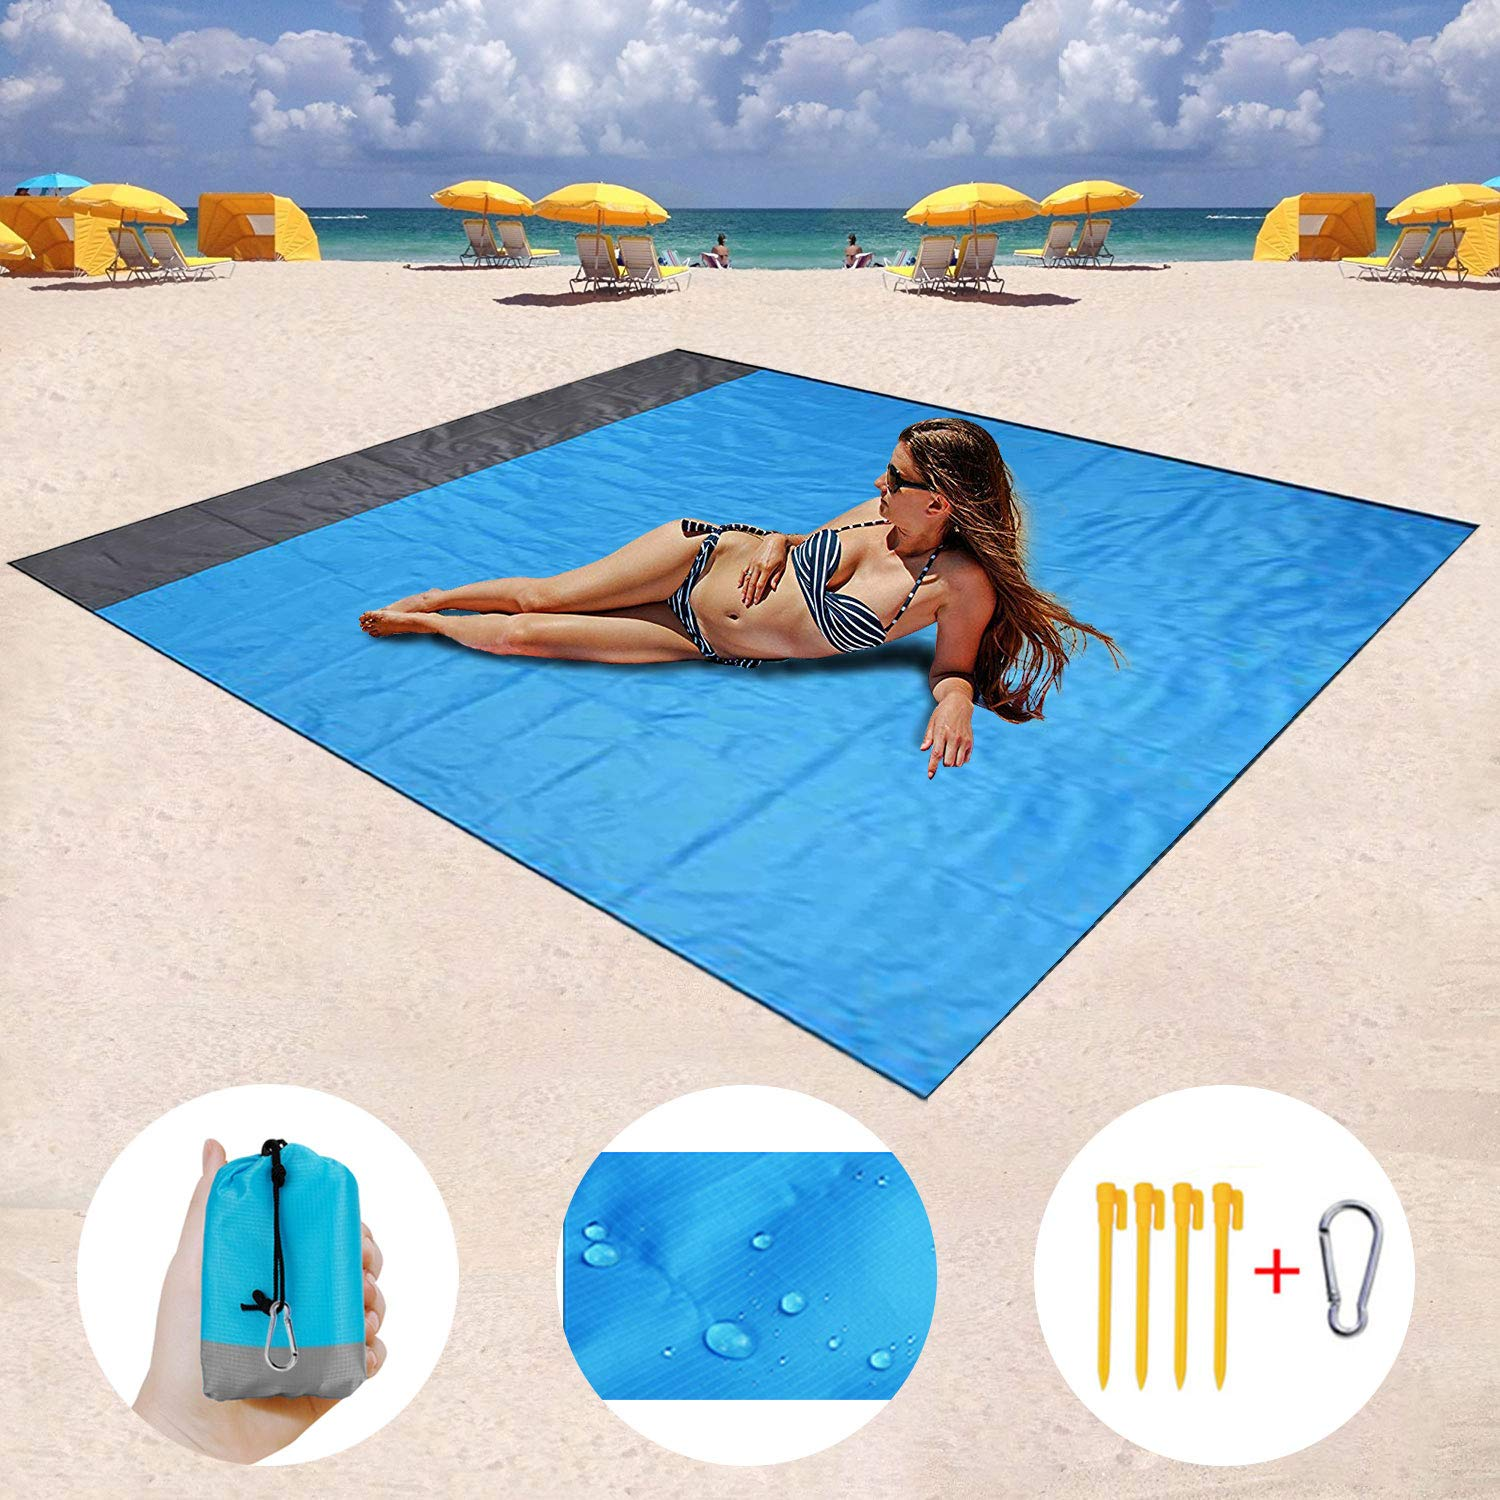 82 X79 Quick Drying Ripstop Nylon Compact Outdoor Picnic Beach Mat Best Sand Proof Picnic Mat for Travel Camping Hiking and Music Festivals Mumu Sugar Sand Free Beach mat